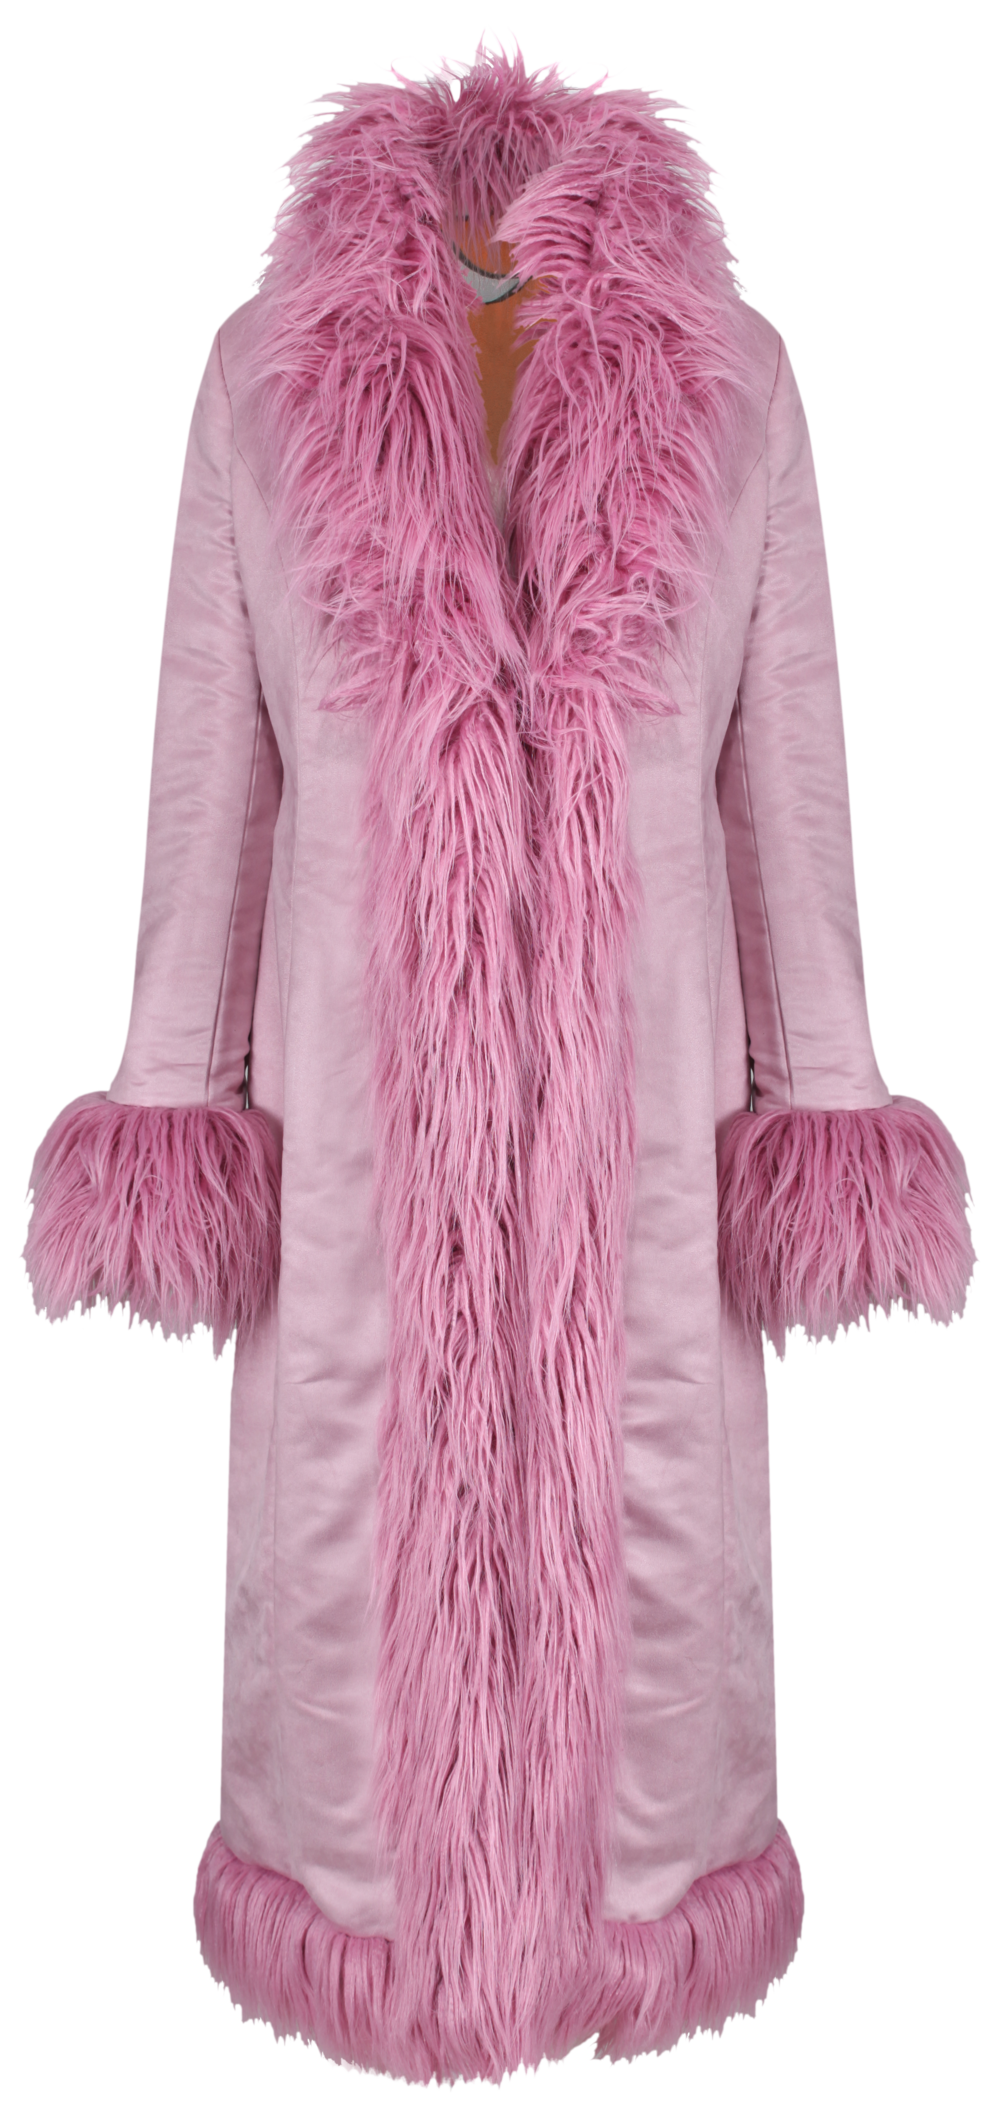 Himalia Coat PINK SUEDE x Lily - SHOP NOW